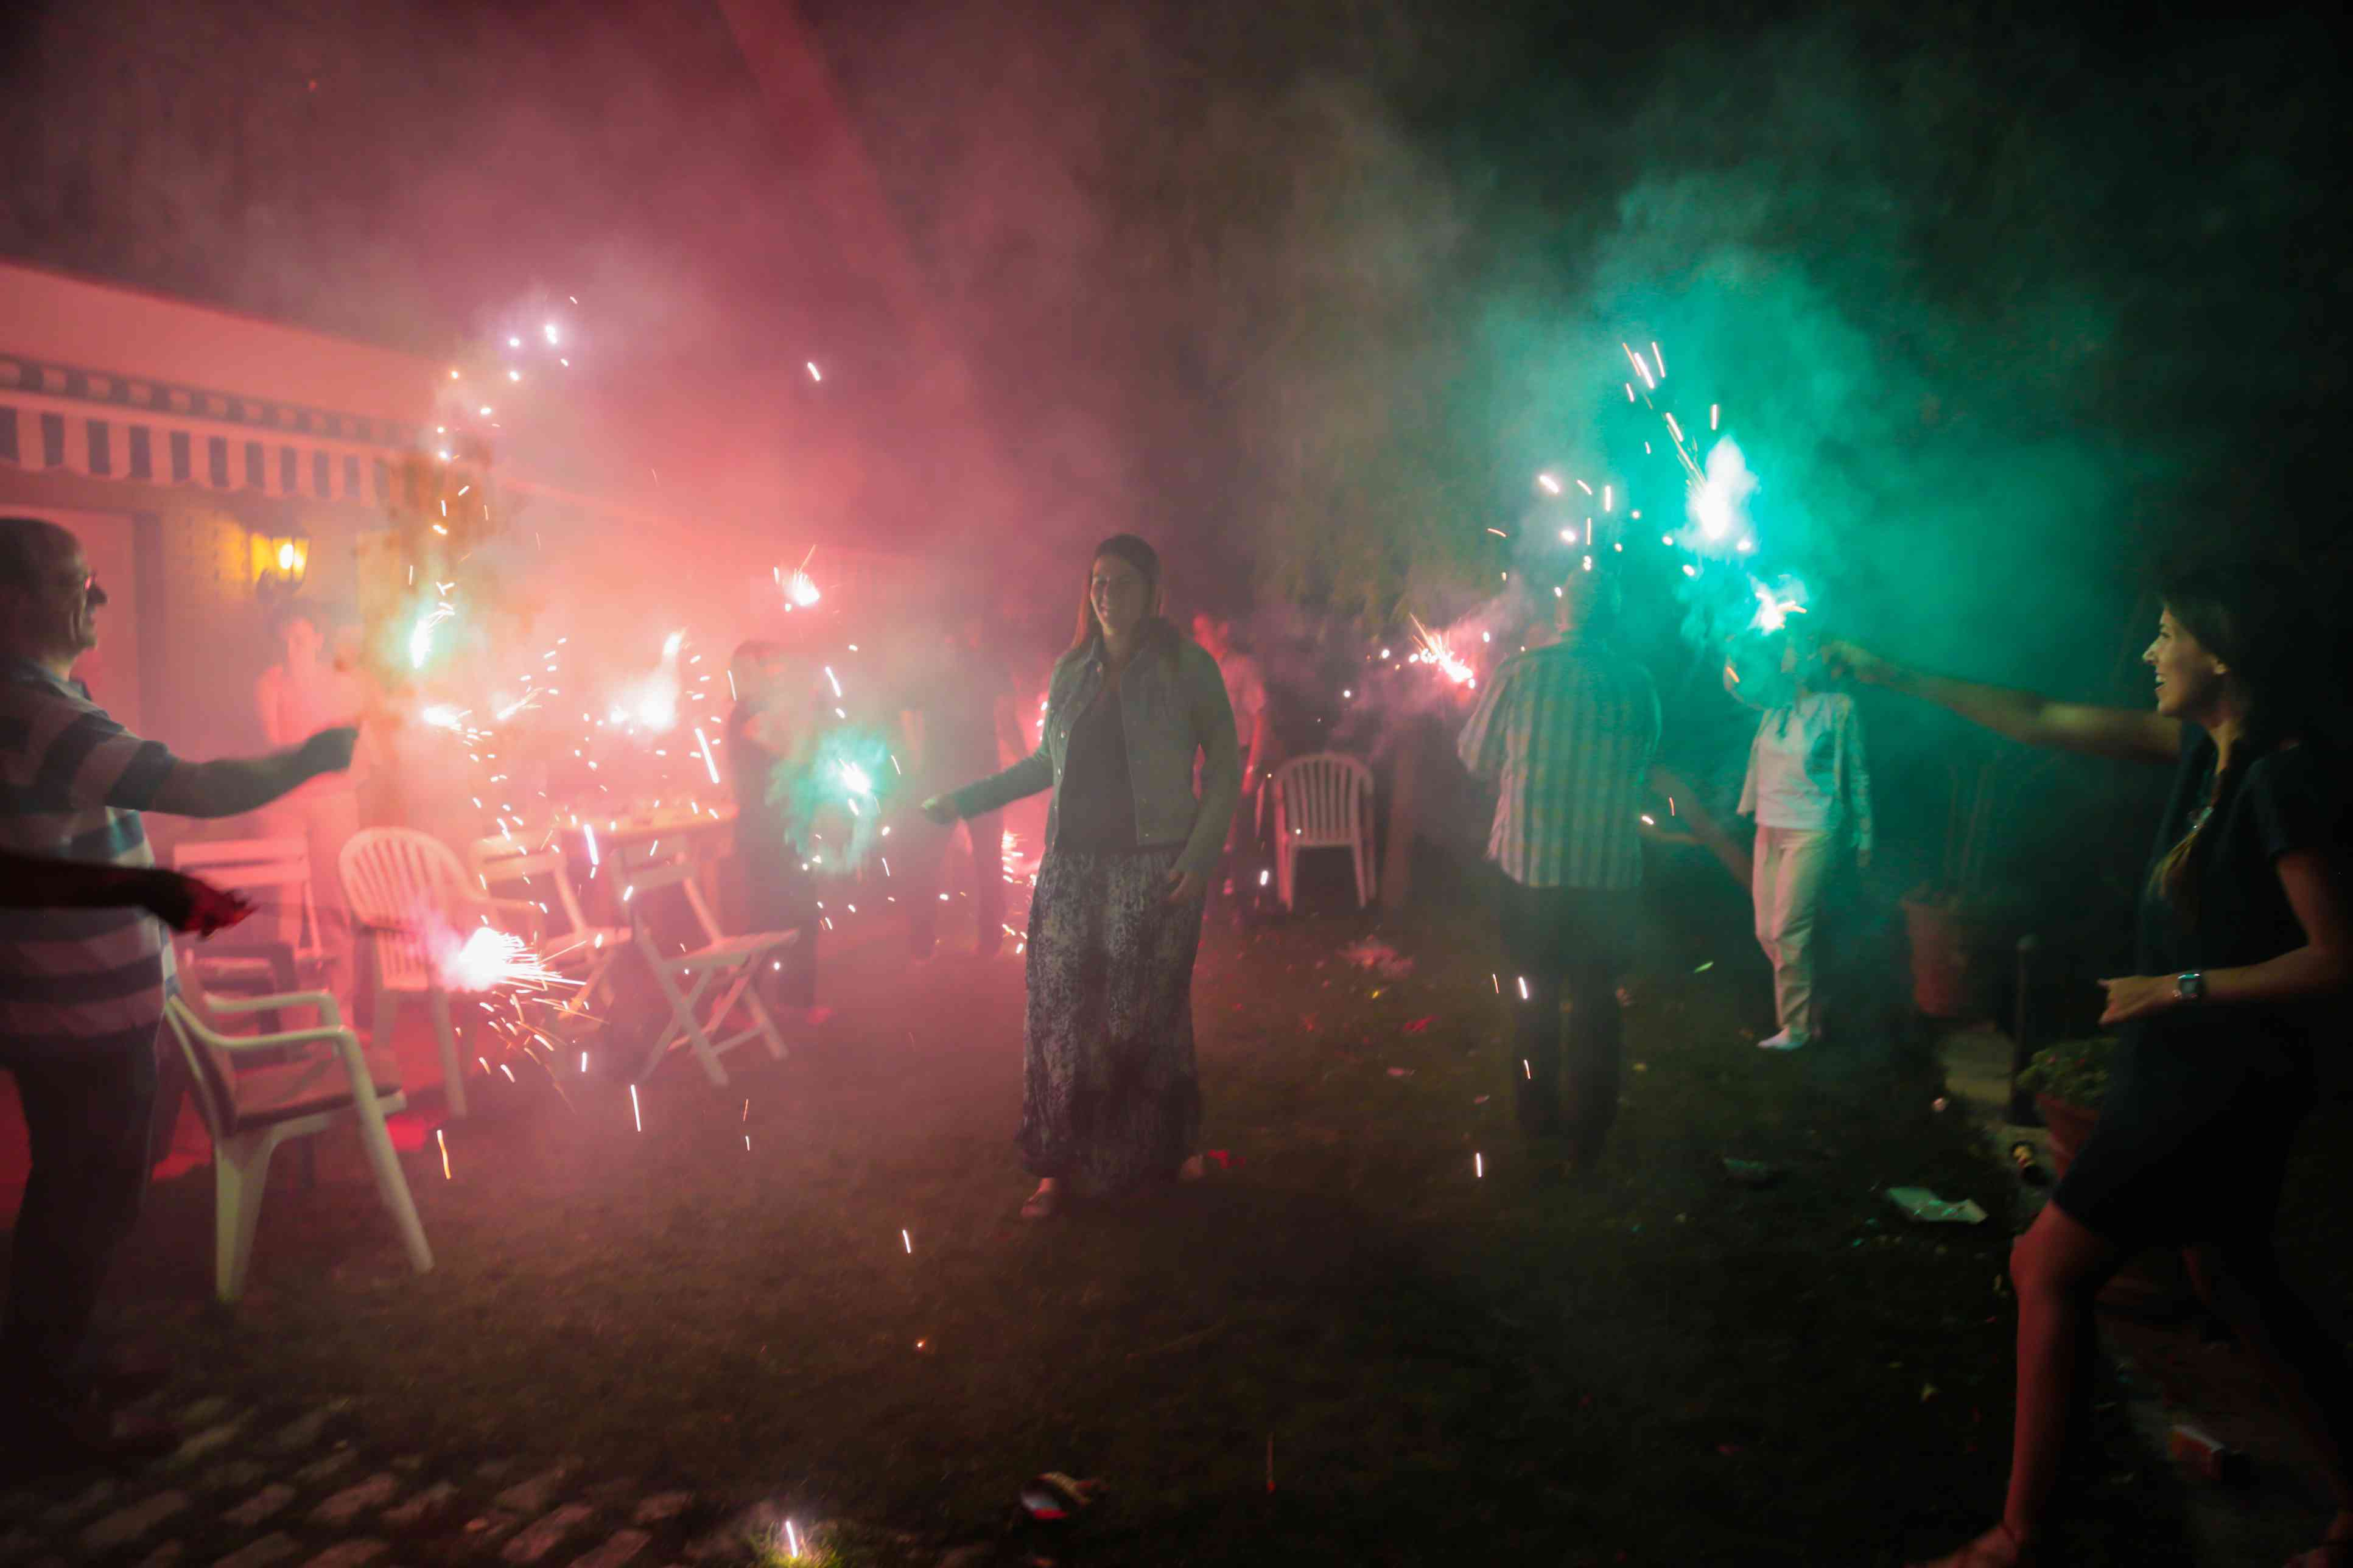 Family with sparklers celebrates summer solstice.